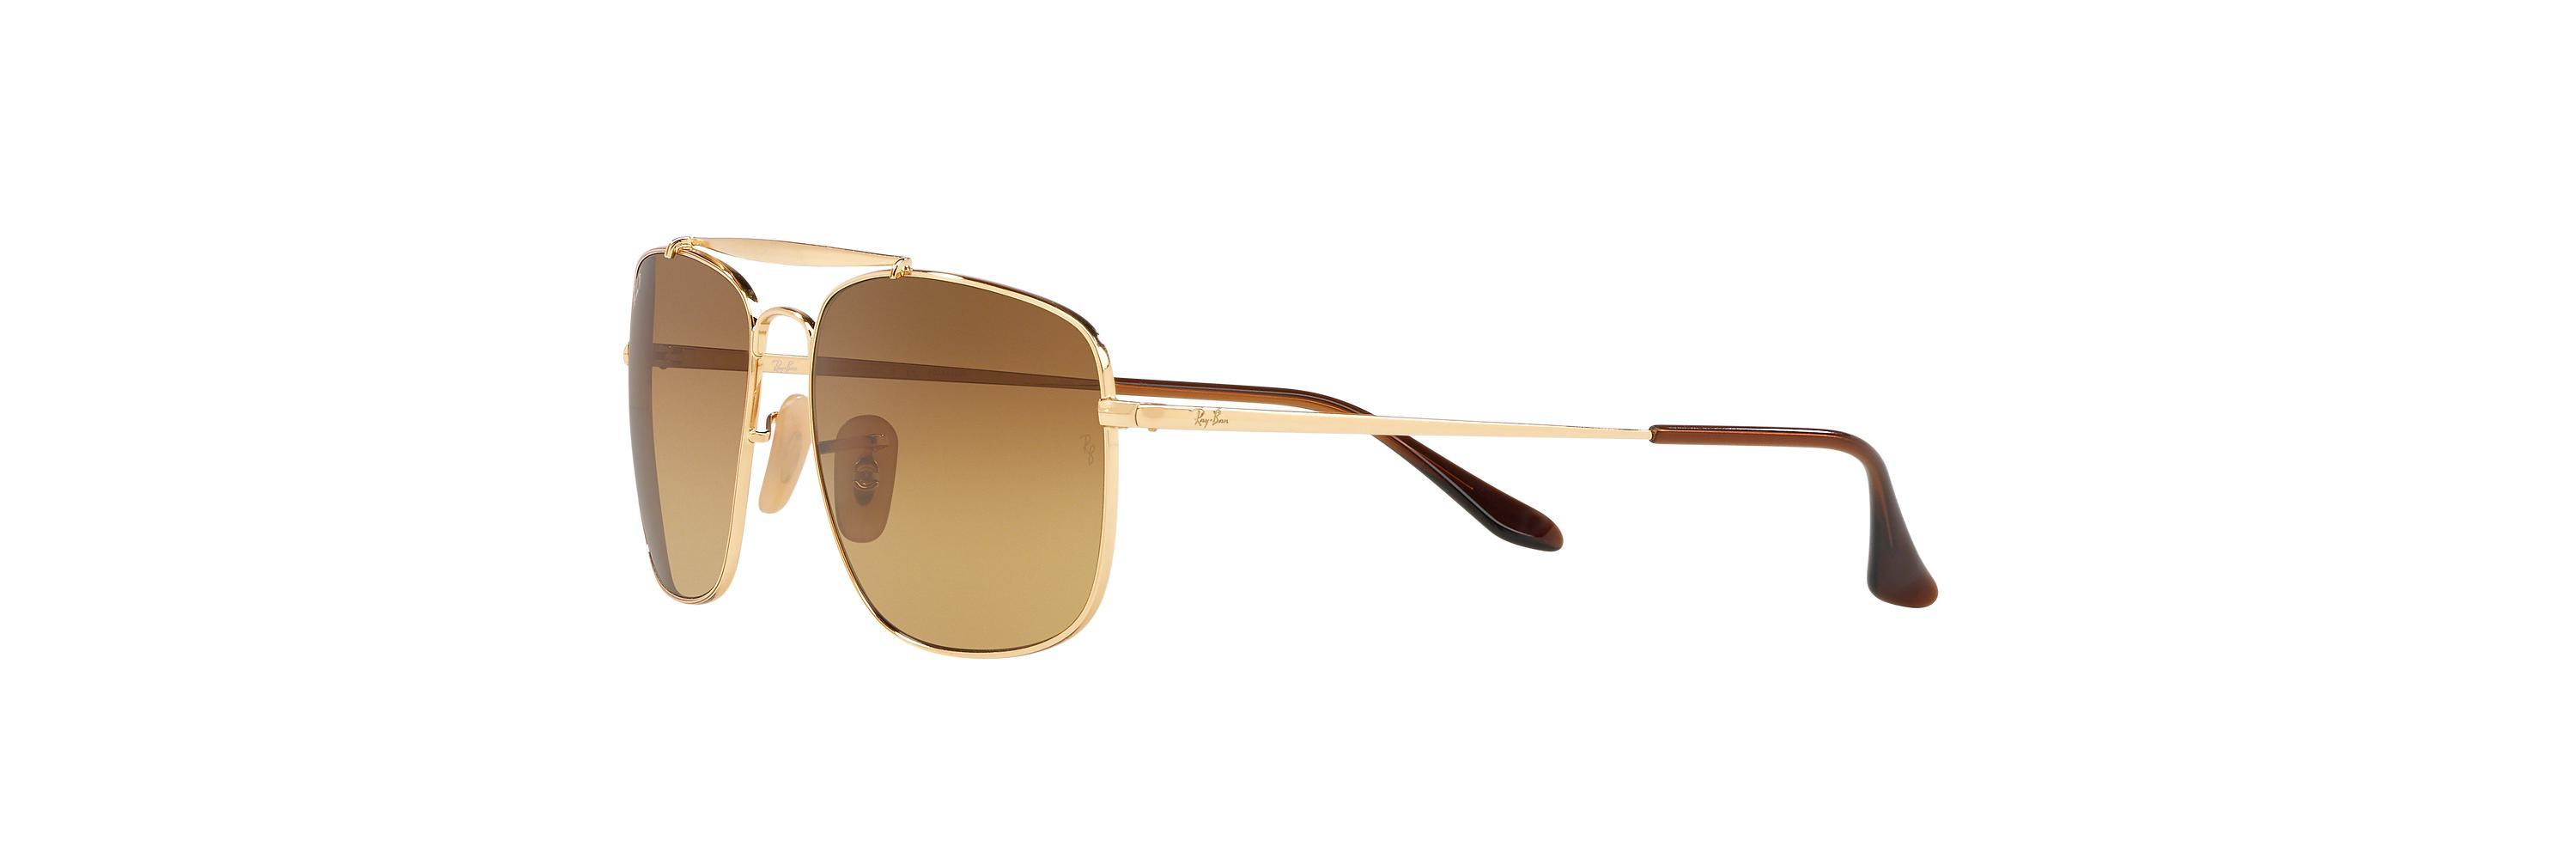 68a62f4751 Lyst - Ray-Ban Rb3560 61 The Colonel Exclusively At Sunglass Hut in ...